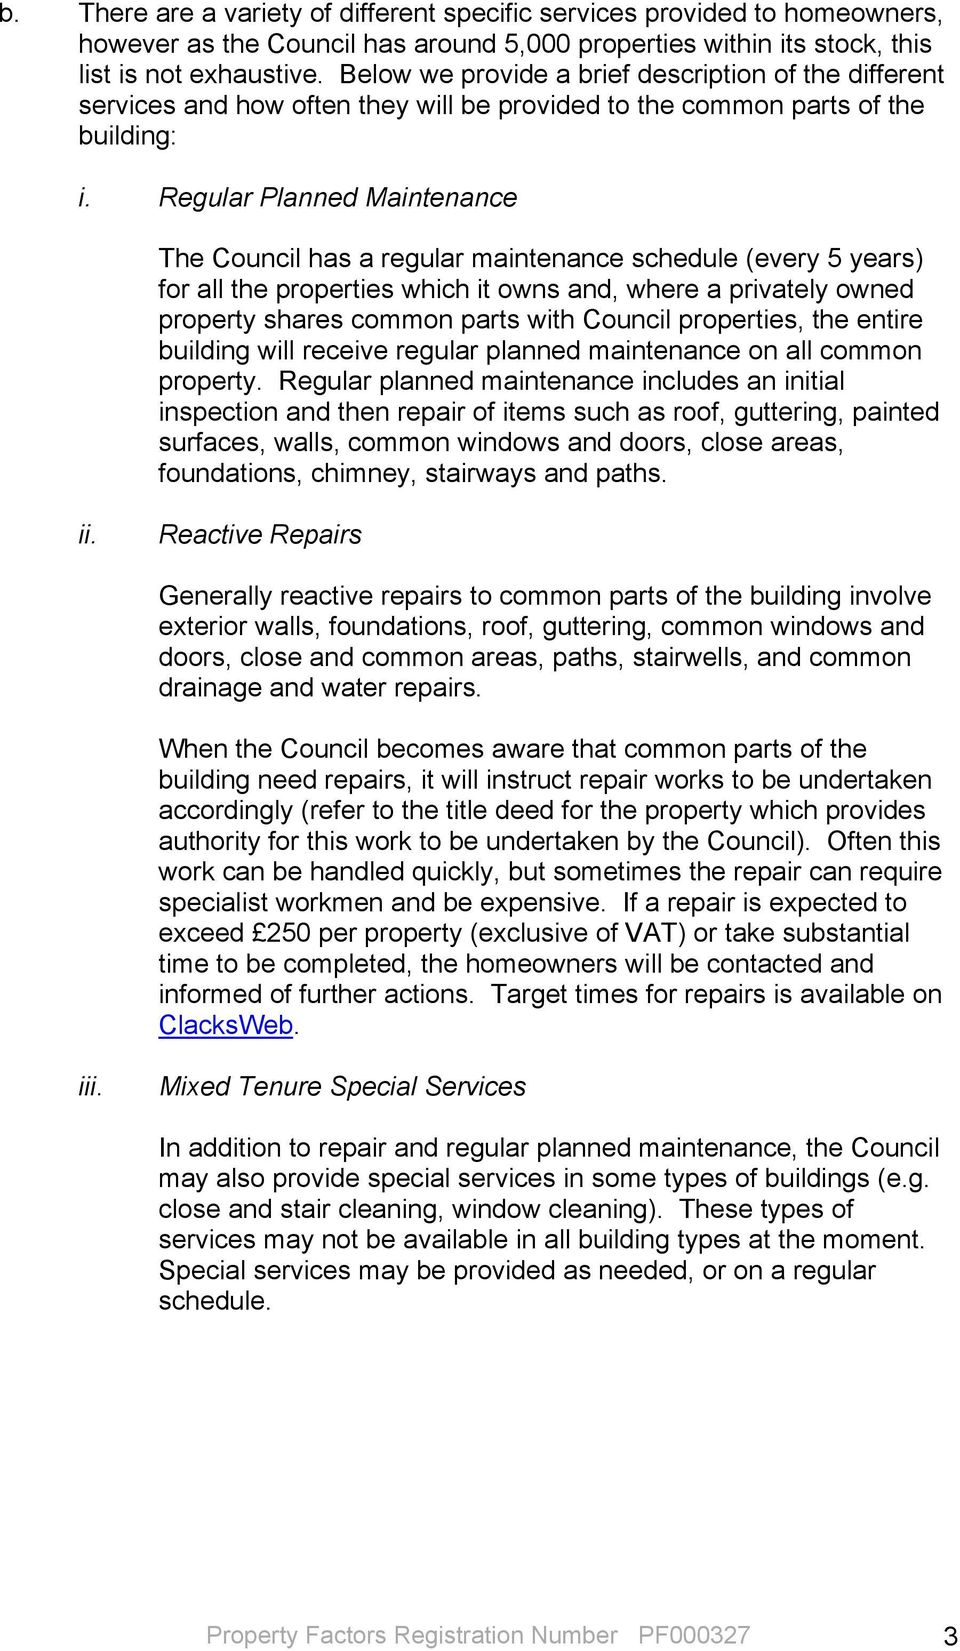 Regular Planned Maintenance The Council has a regular maintenance schedule (every 5 years) for all the properties which it owns and, where a privately owned property shares common parts with Council